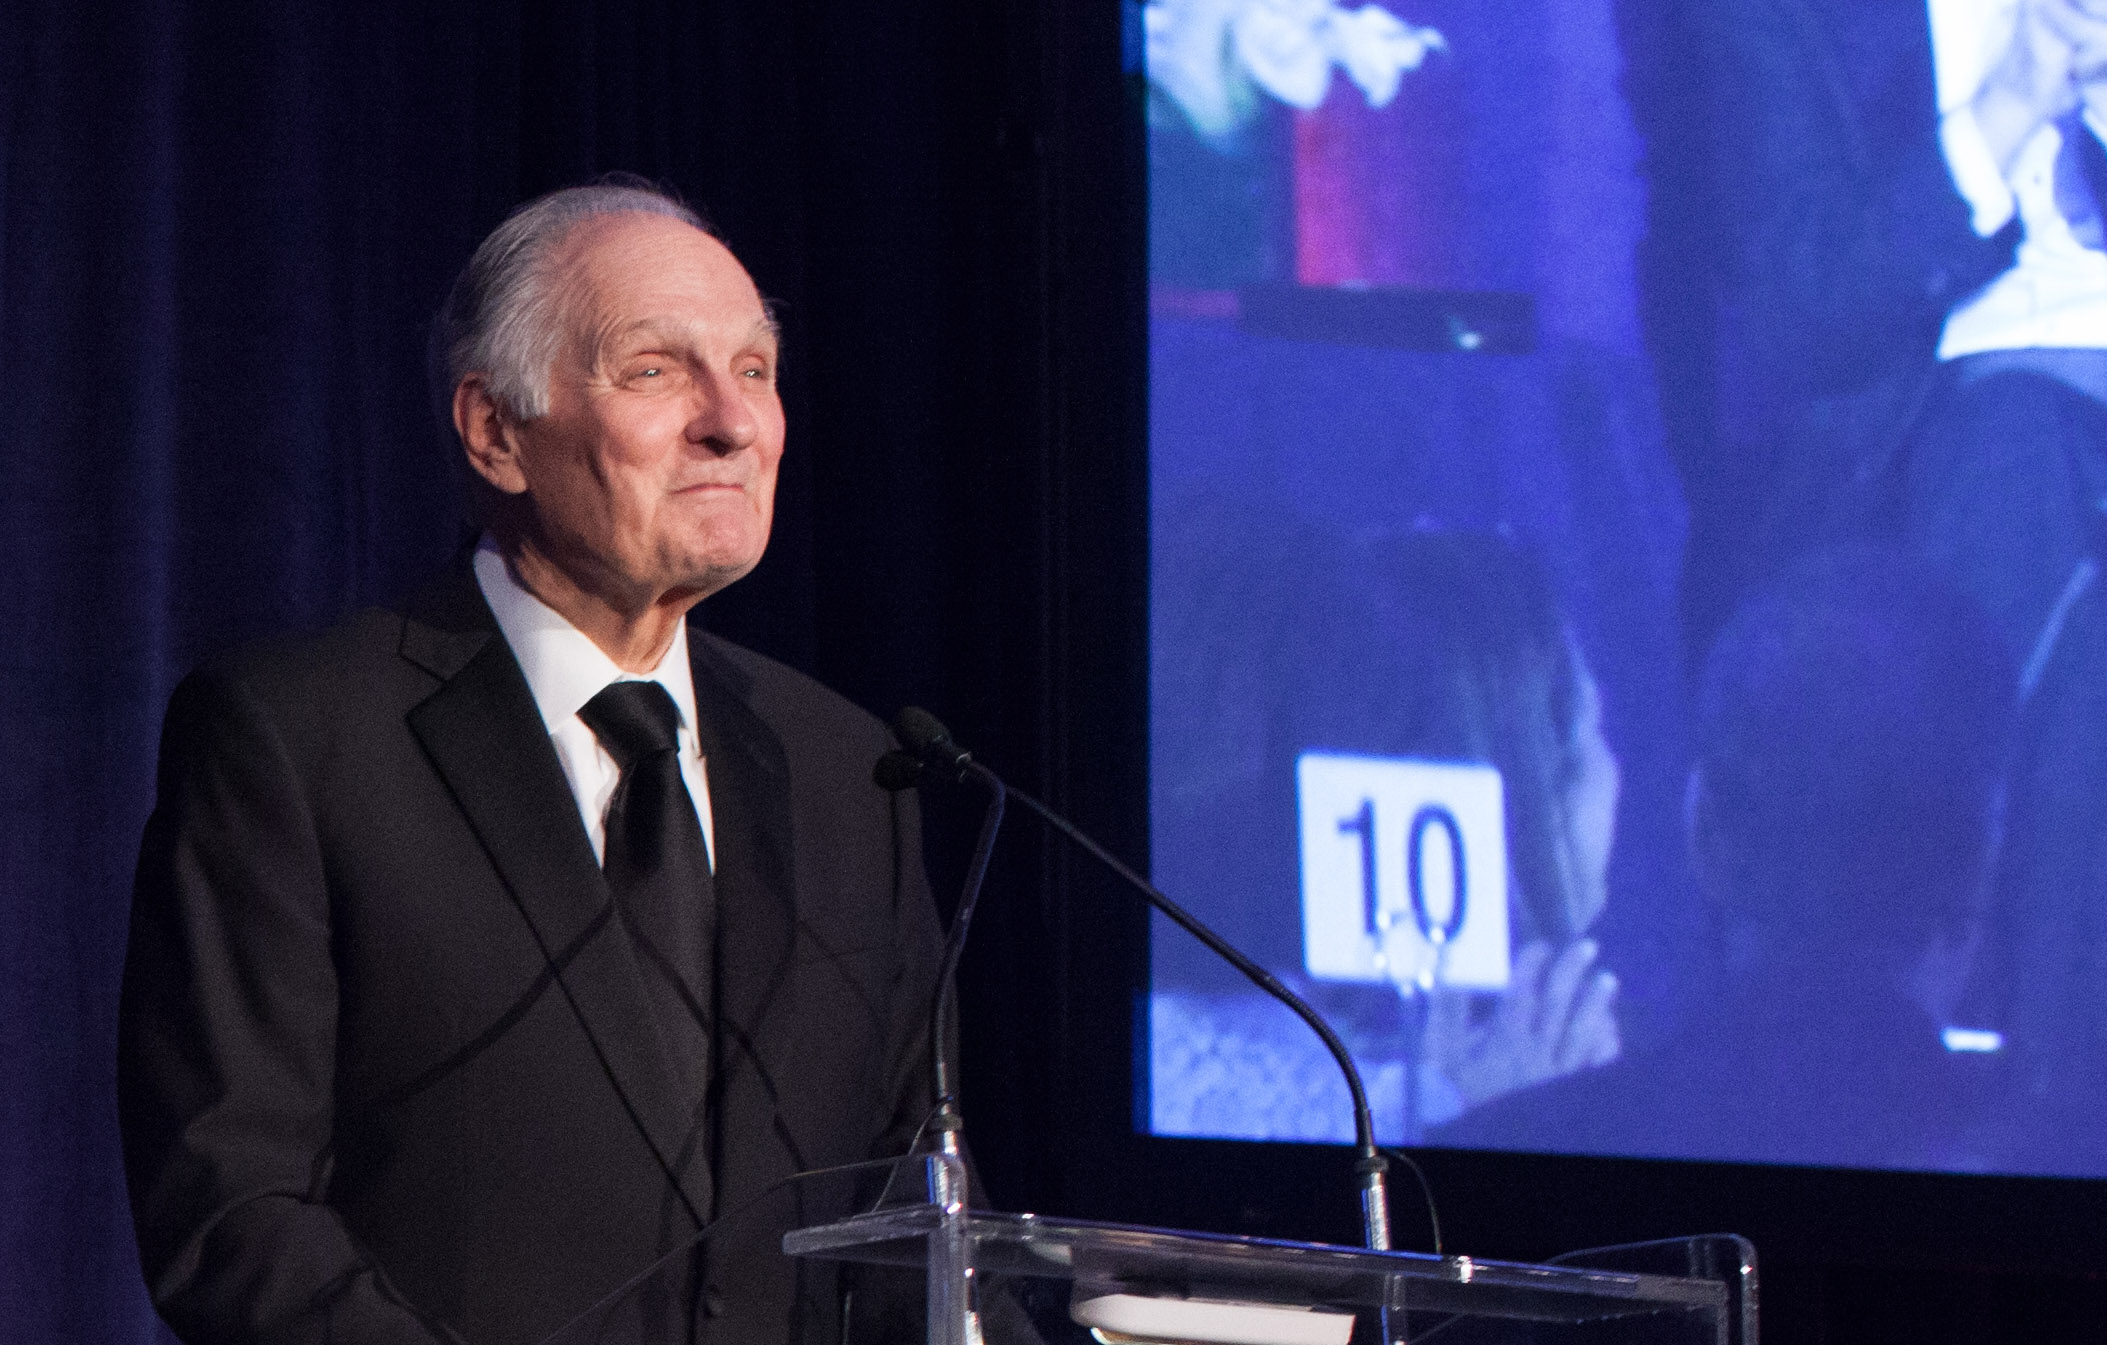 For Alan Alda, science communication is a state of mind